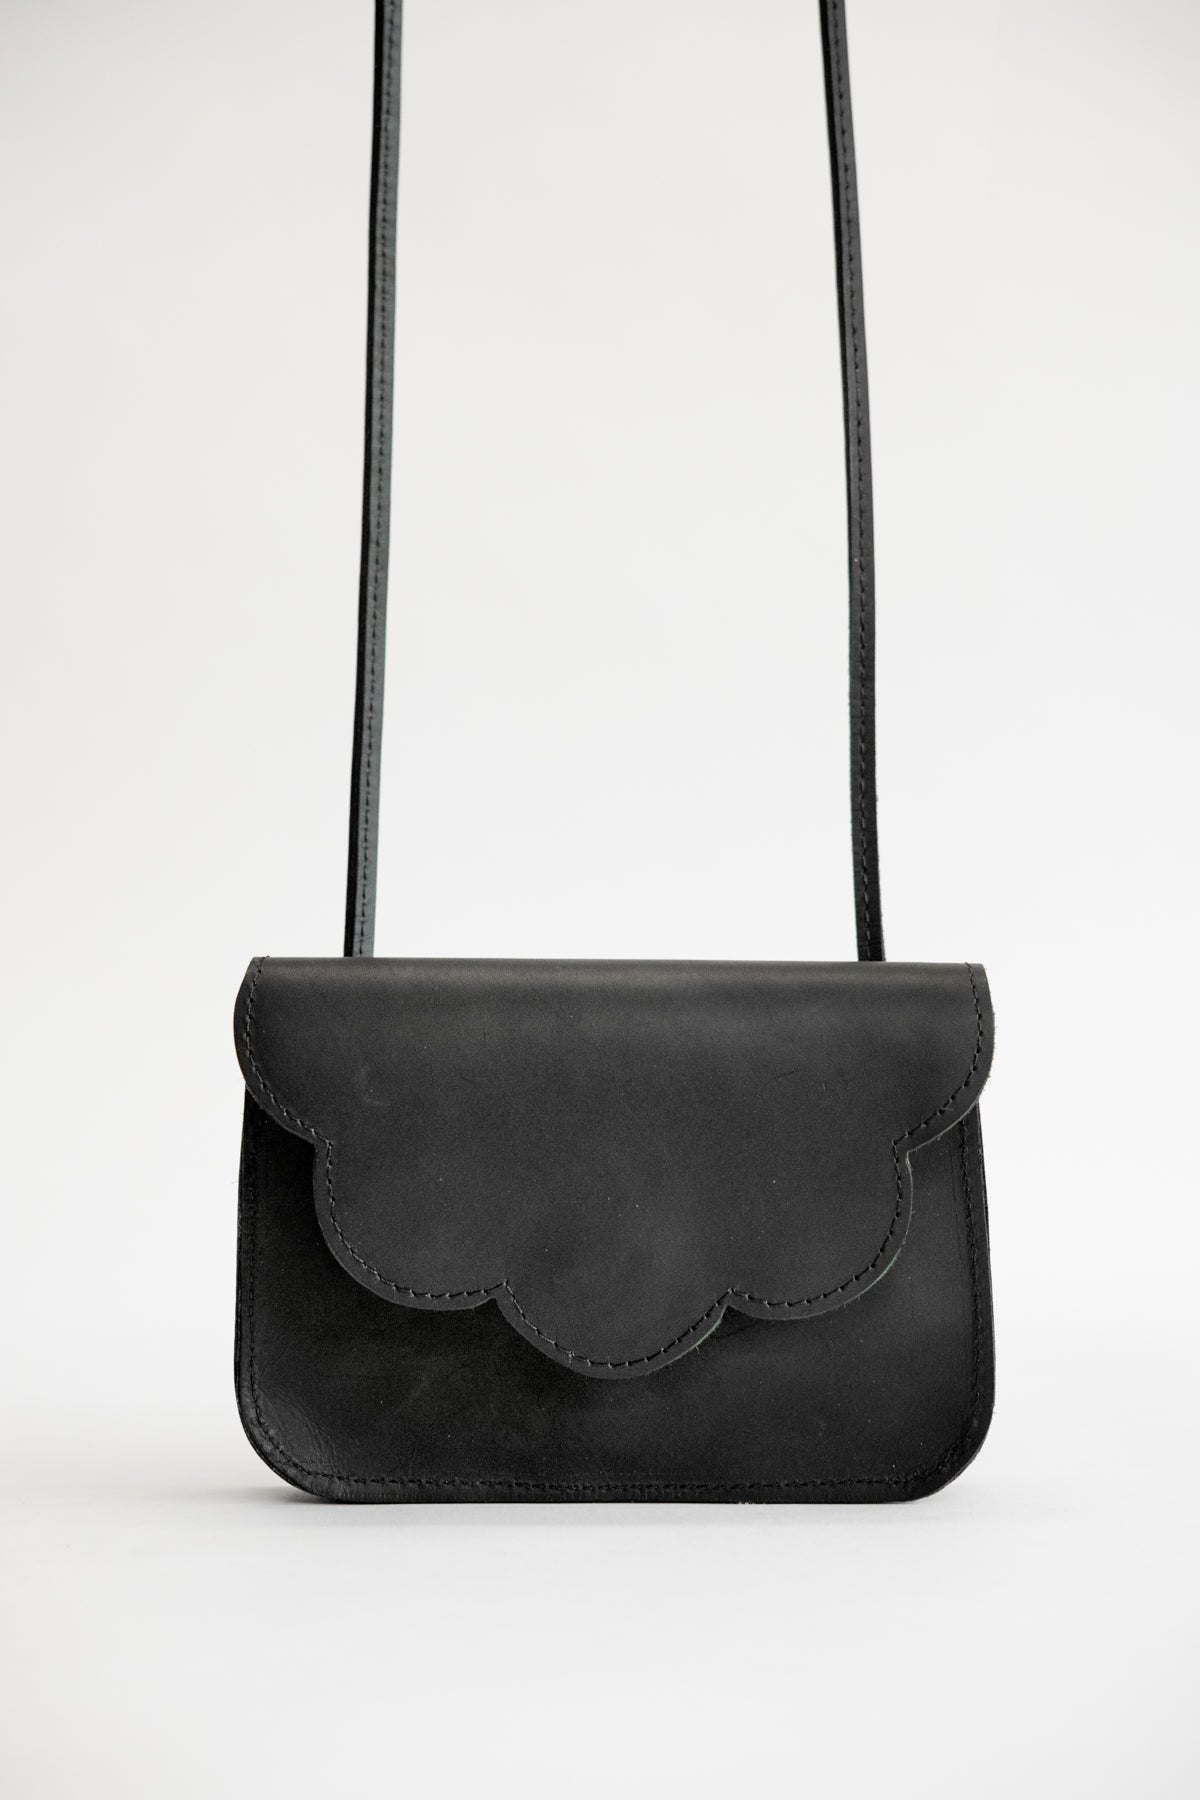 Small leather bag with shoulder strap and scalloped flap